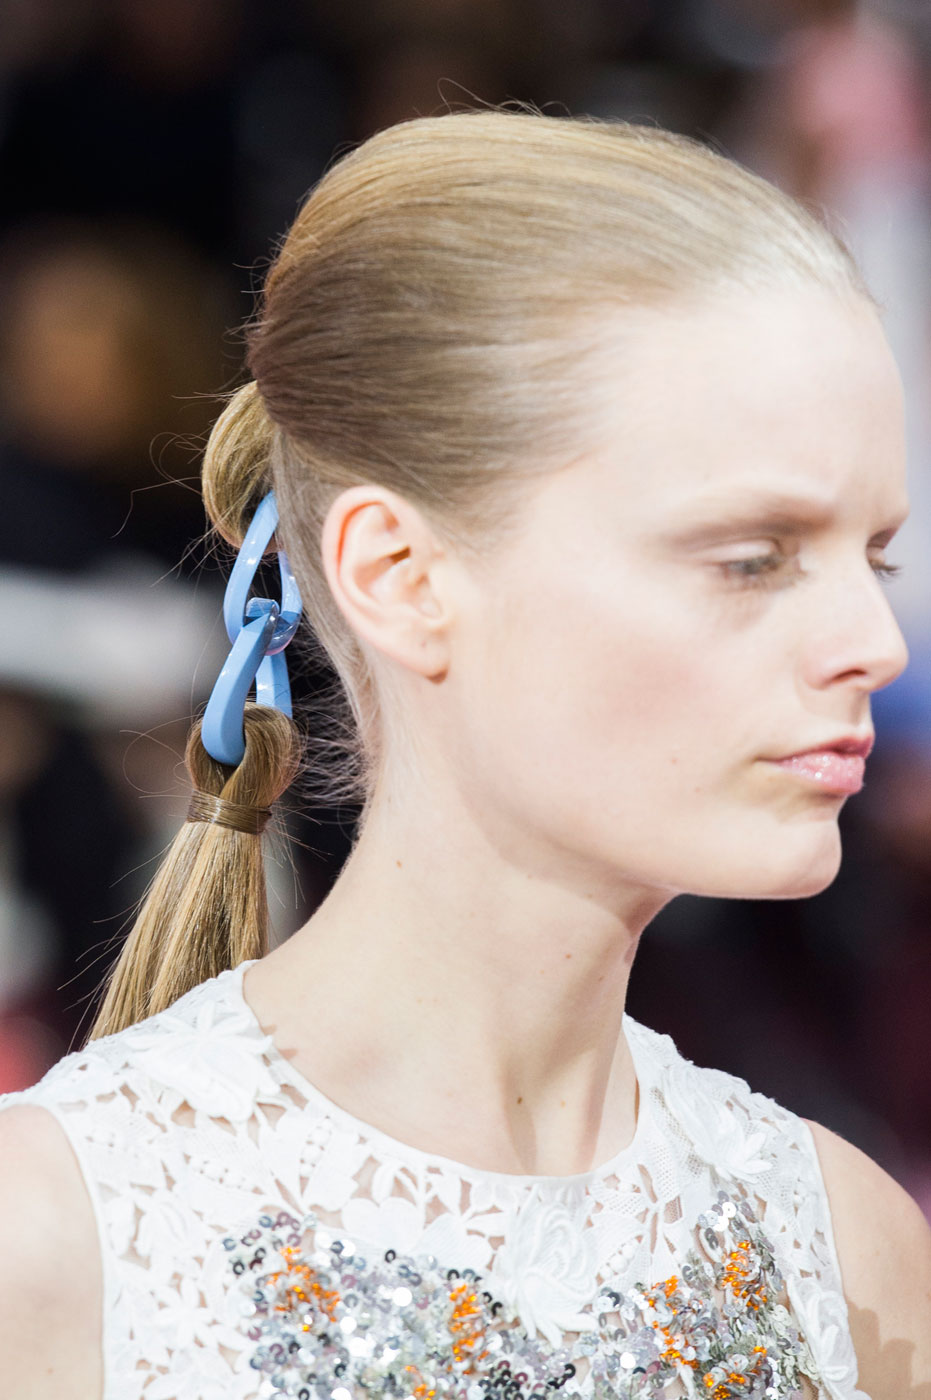 Christian-Dior-fashion-runway-show-close-ups-haute-couture-paris-spring-summer-2015-the-impression-194